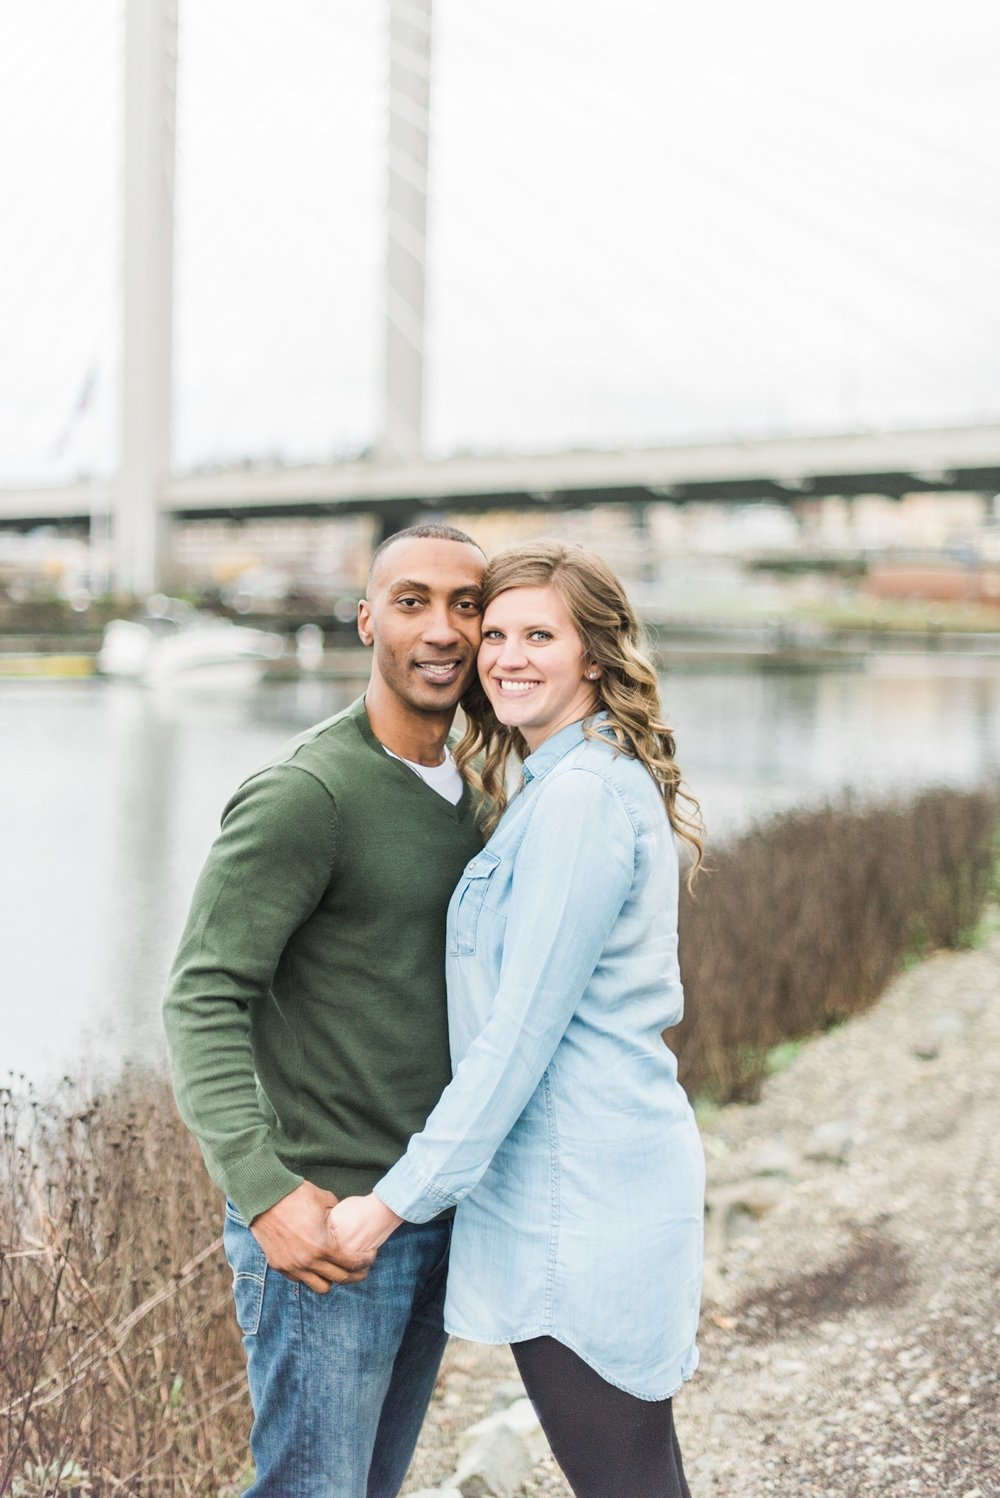 Brooke Summers Photography | Courtney + Devon Engagement